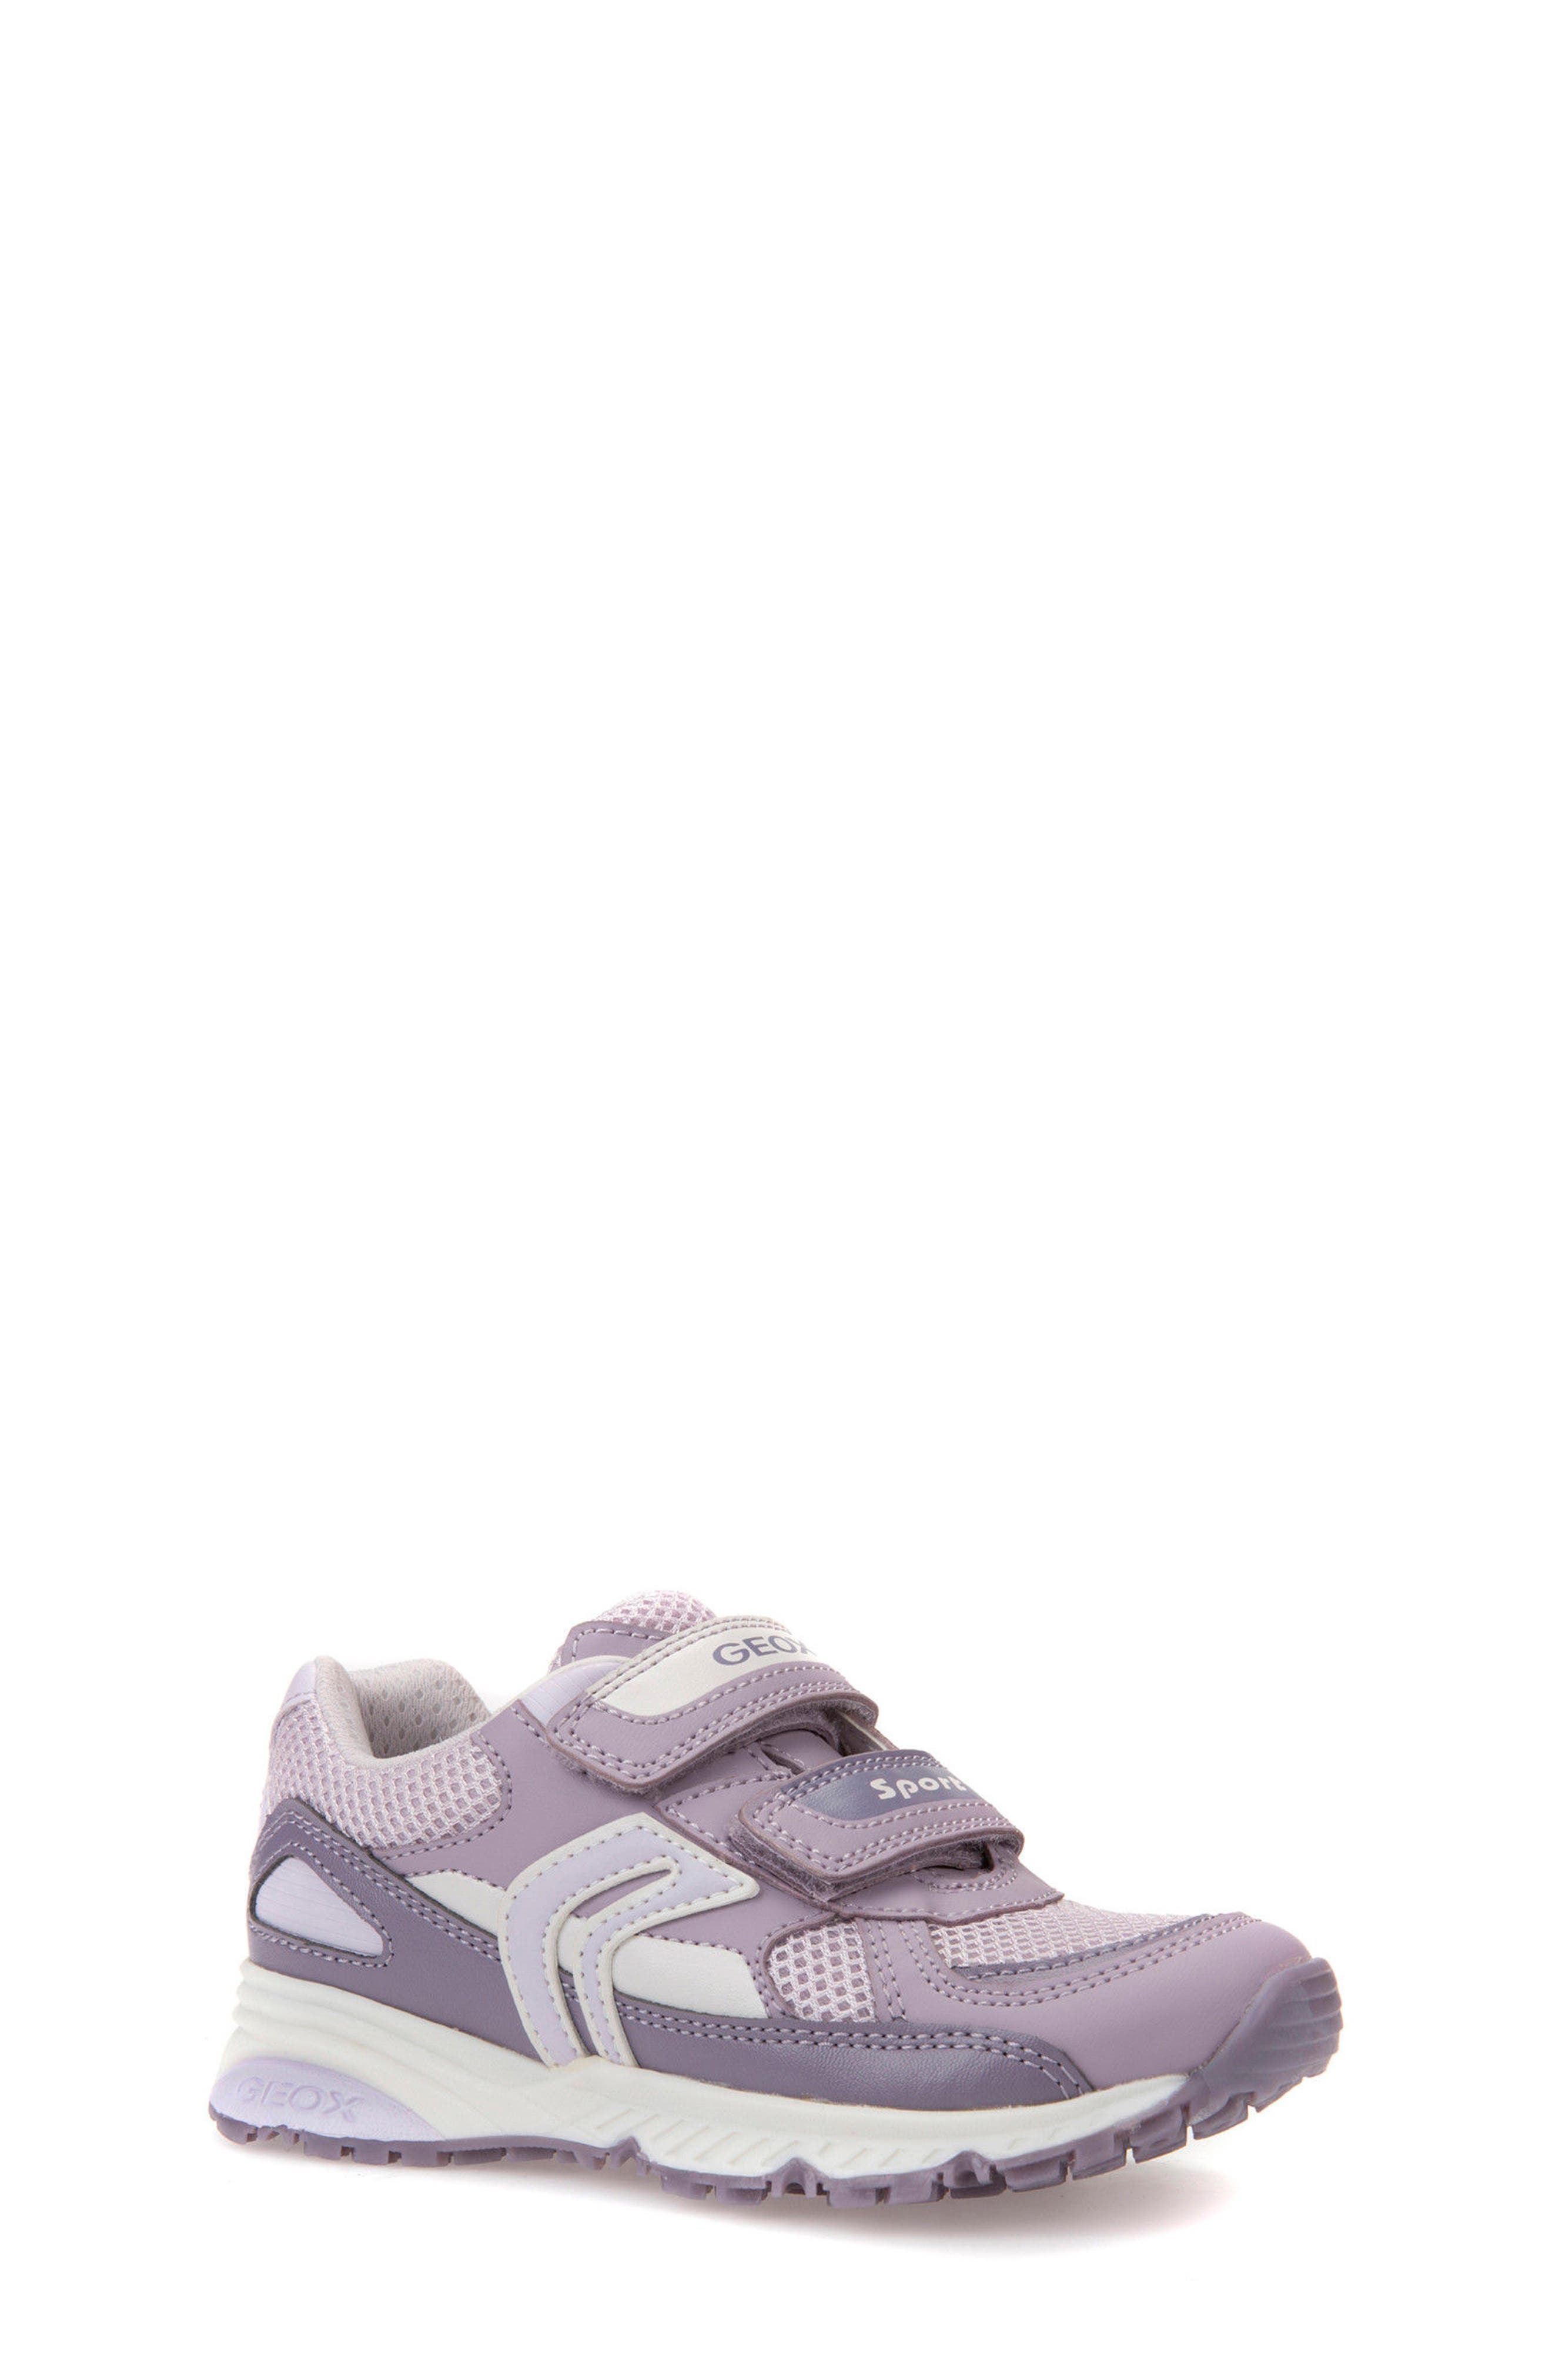 Geox Bernie Sneaker (Toddler, Little Kid & Big Kid)